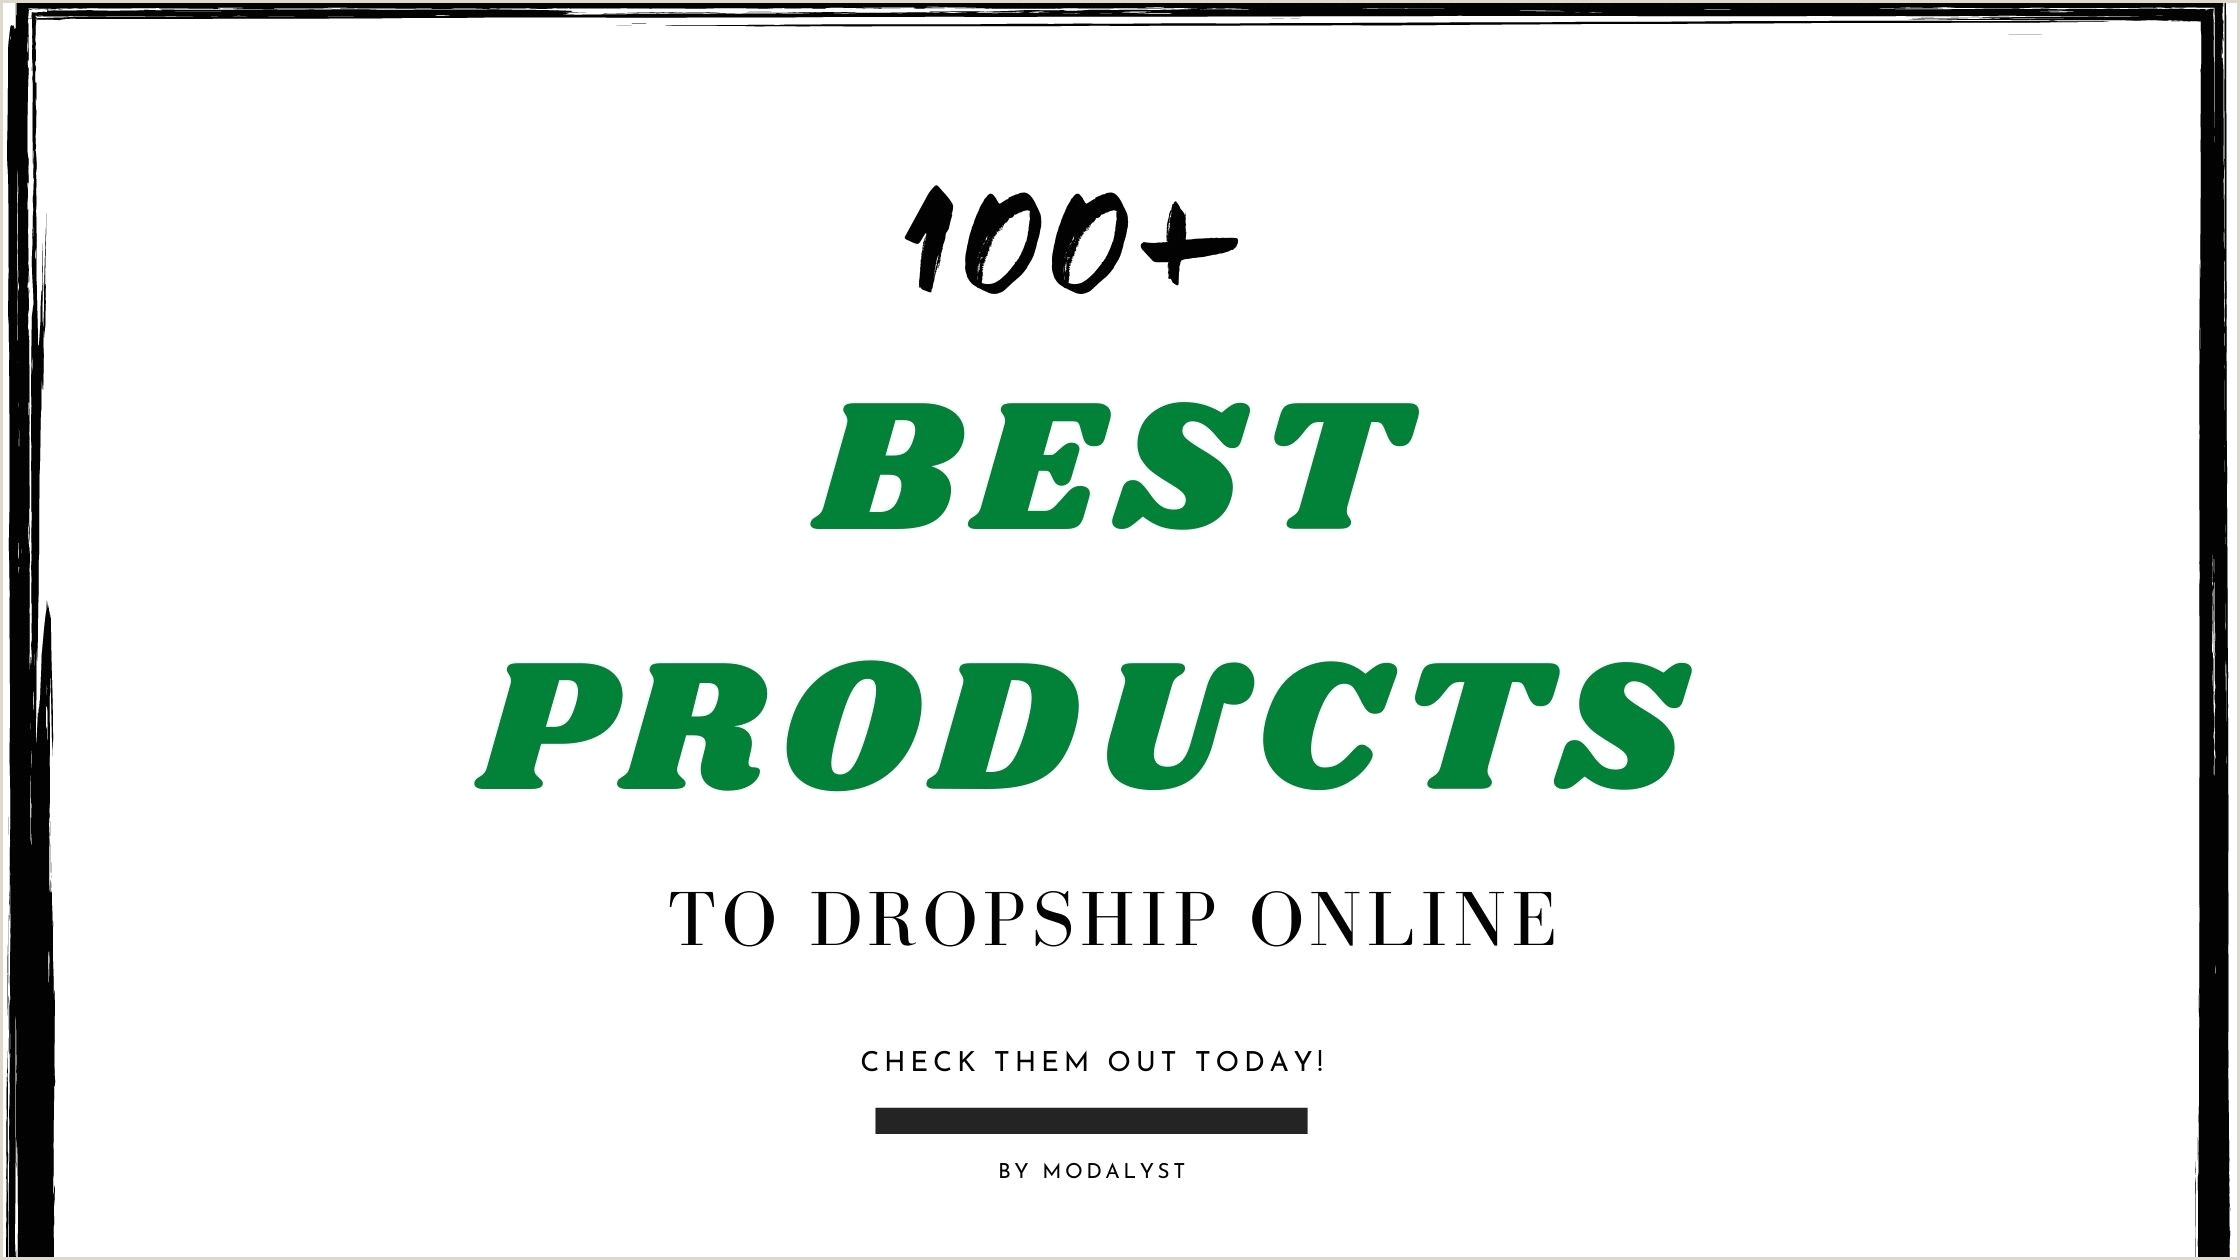 Leave Your Business Card For A Chance To Win 100 Best Products To Dropship In 2020 Modalyst